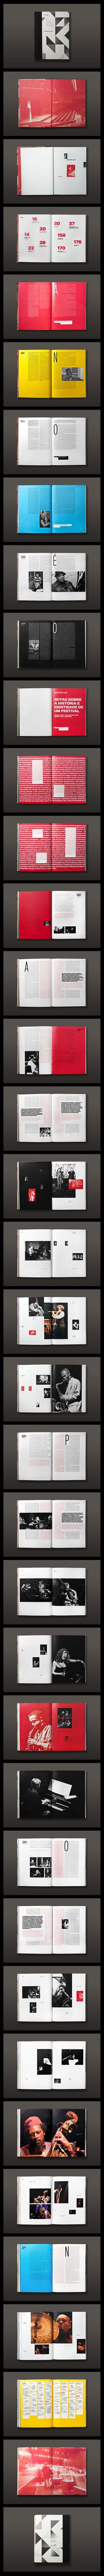 jazz 20 year edition book